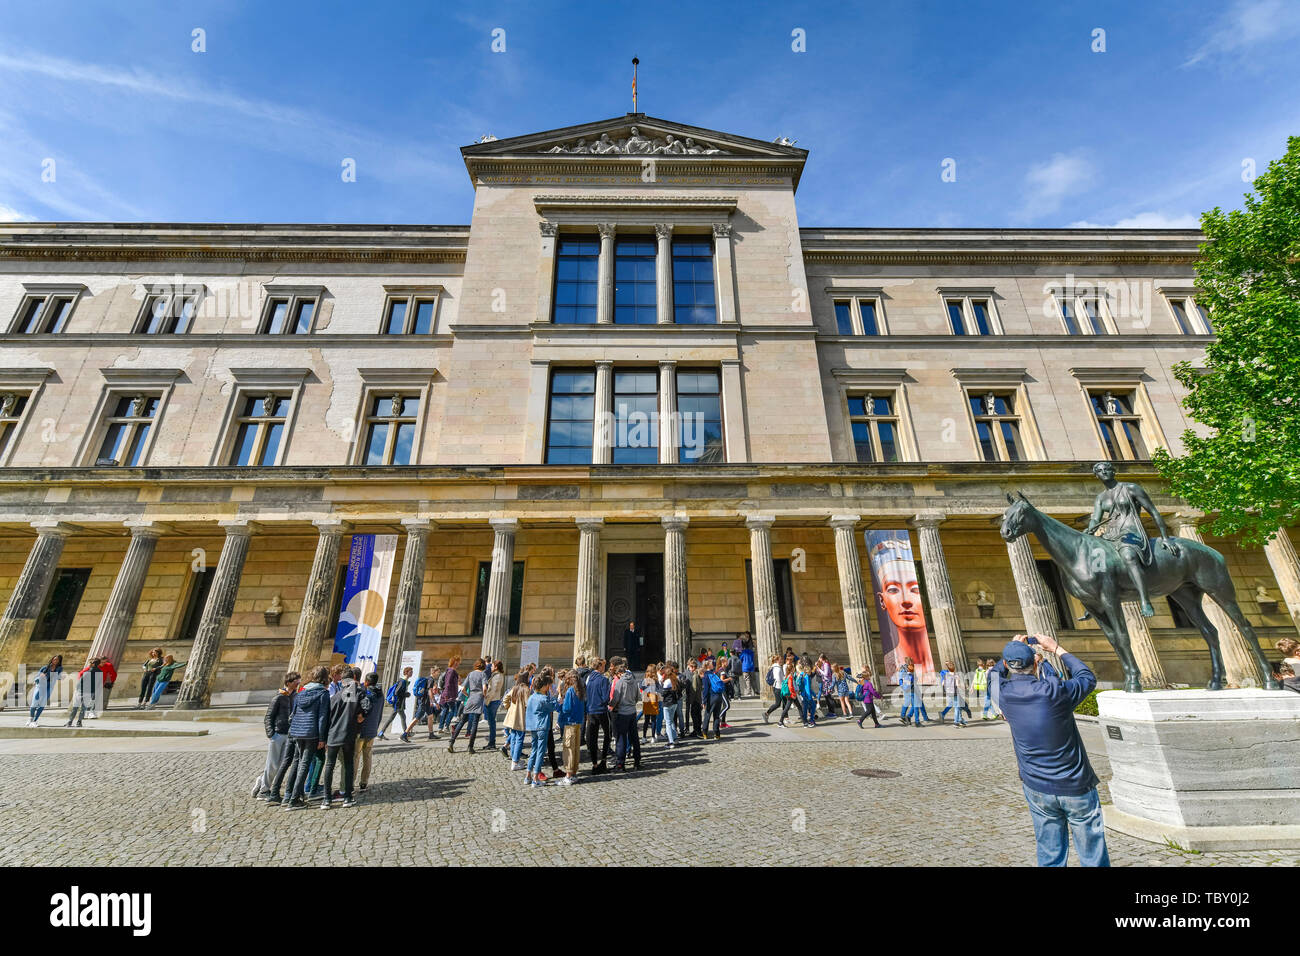 New museum, Bodestrasse, museum island, middle, Berlin, Germany, Neues Museum, Bodestraße, Museumsinsel, Mitte, Deutschland Stock Photo